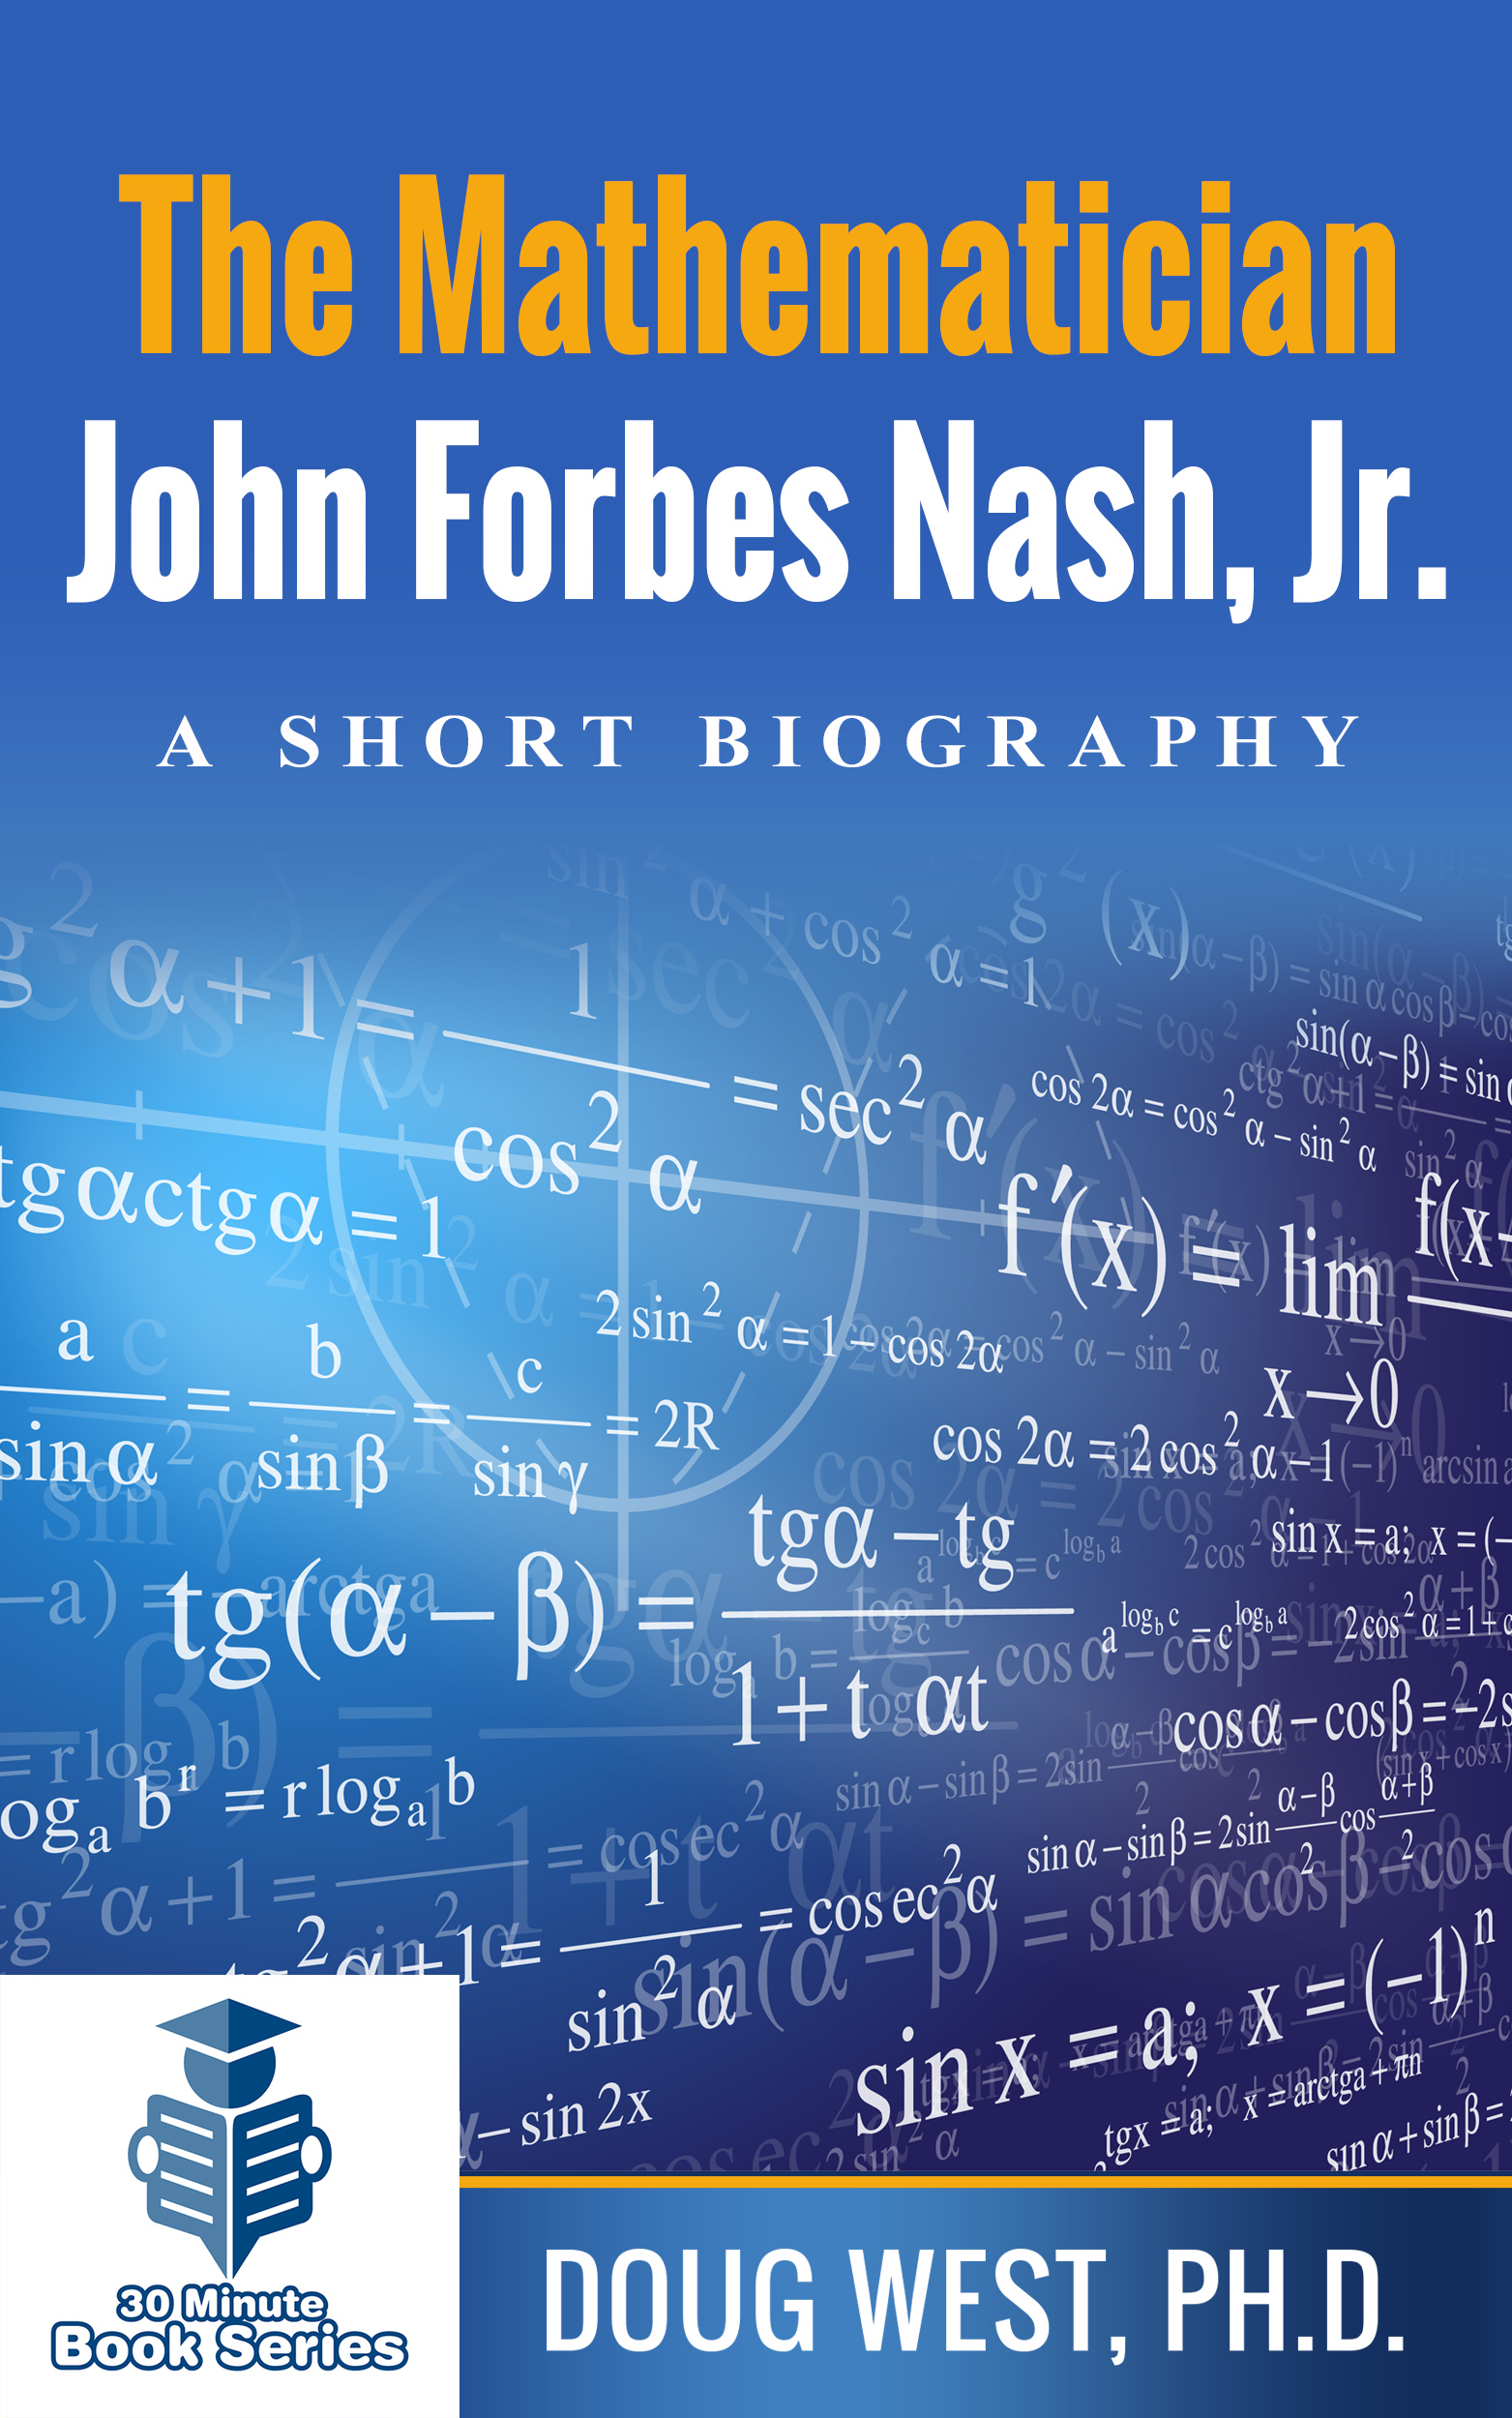 The Mathematician John Forbes Nash Jr  – A Short Biography, an Ebook by  Doug West